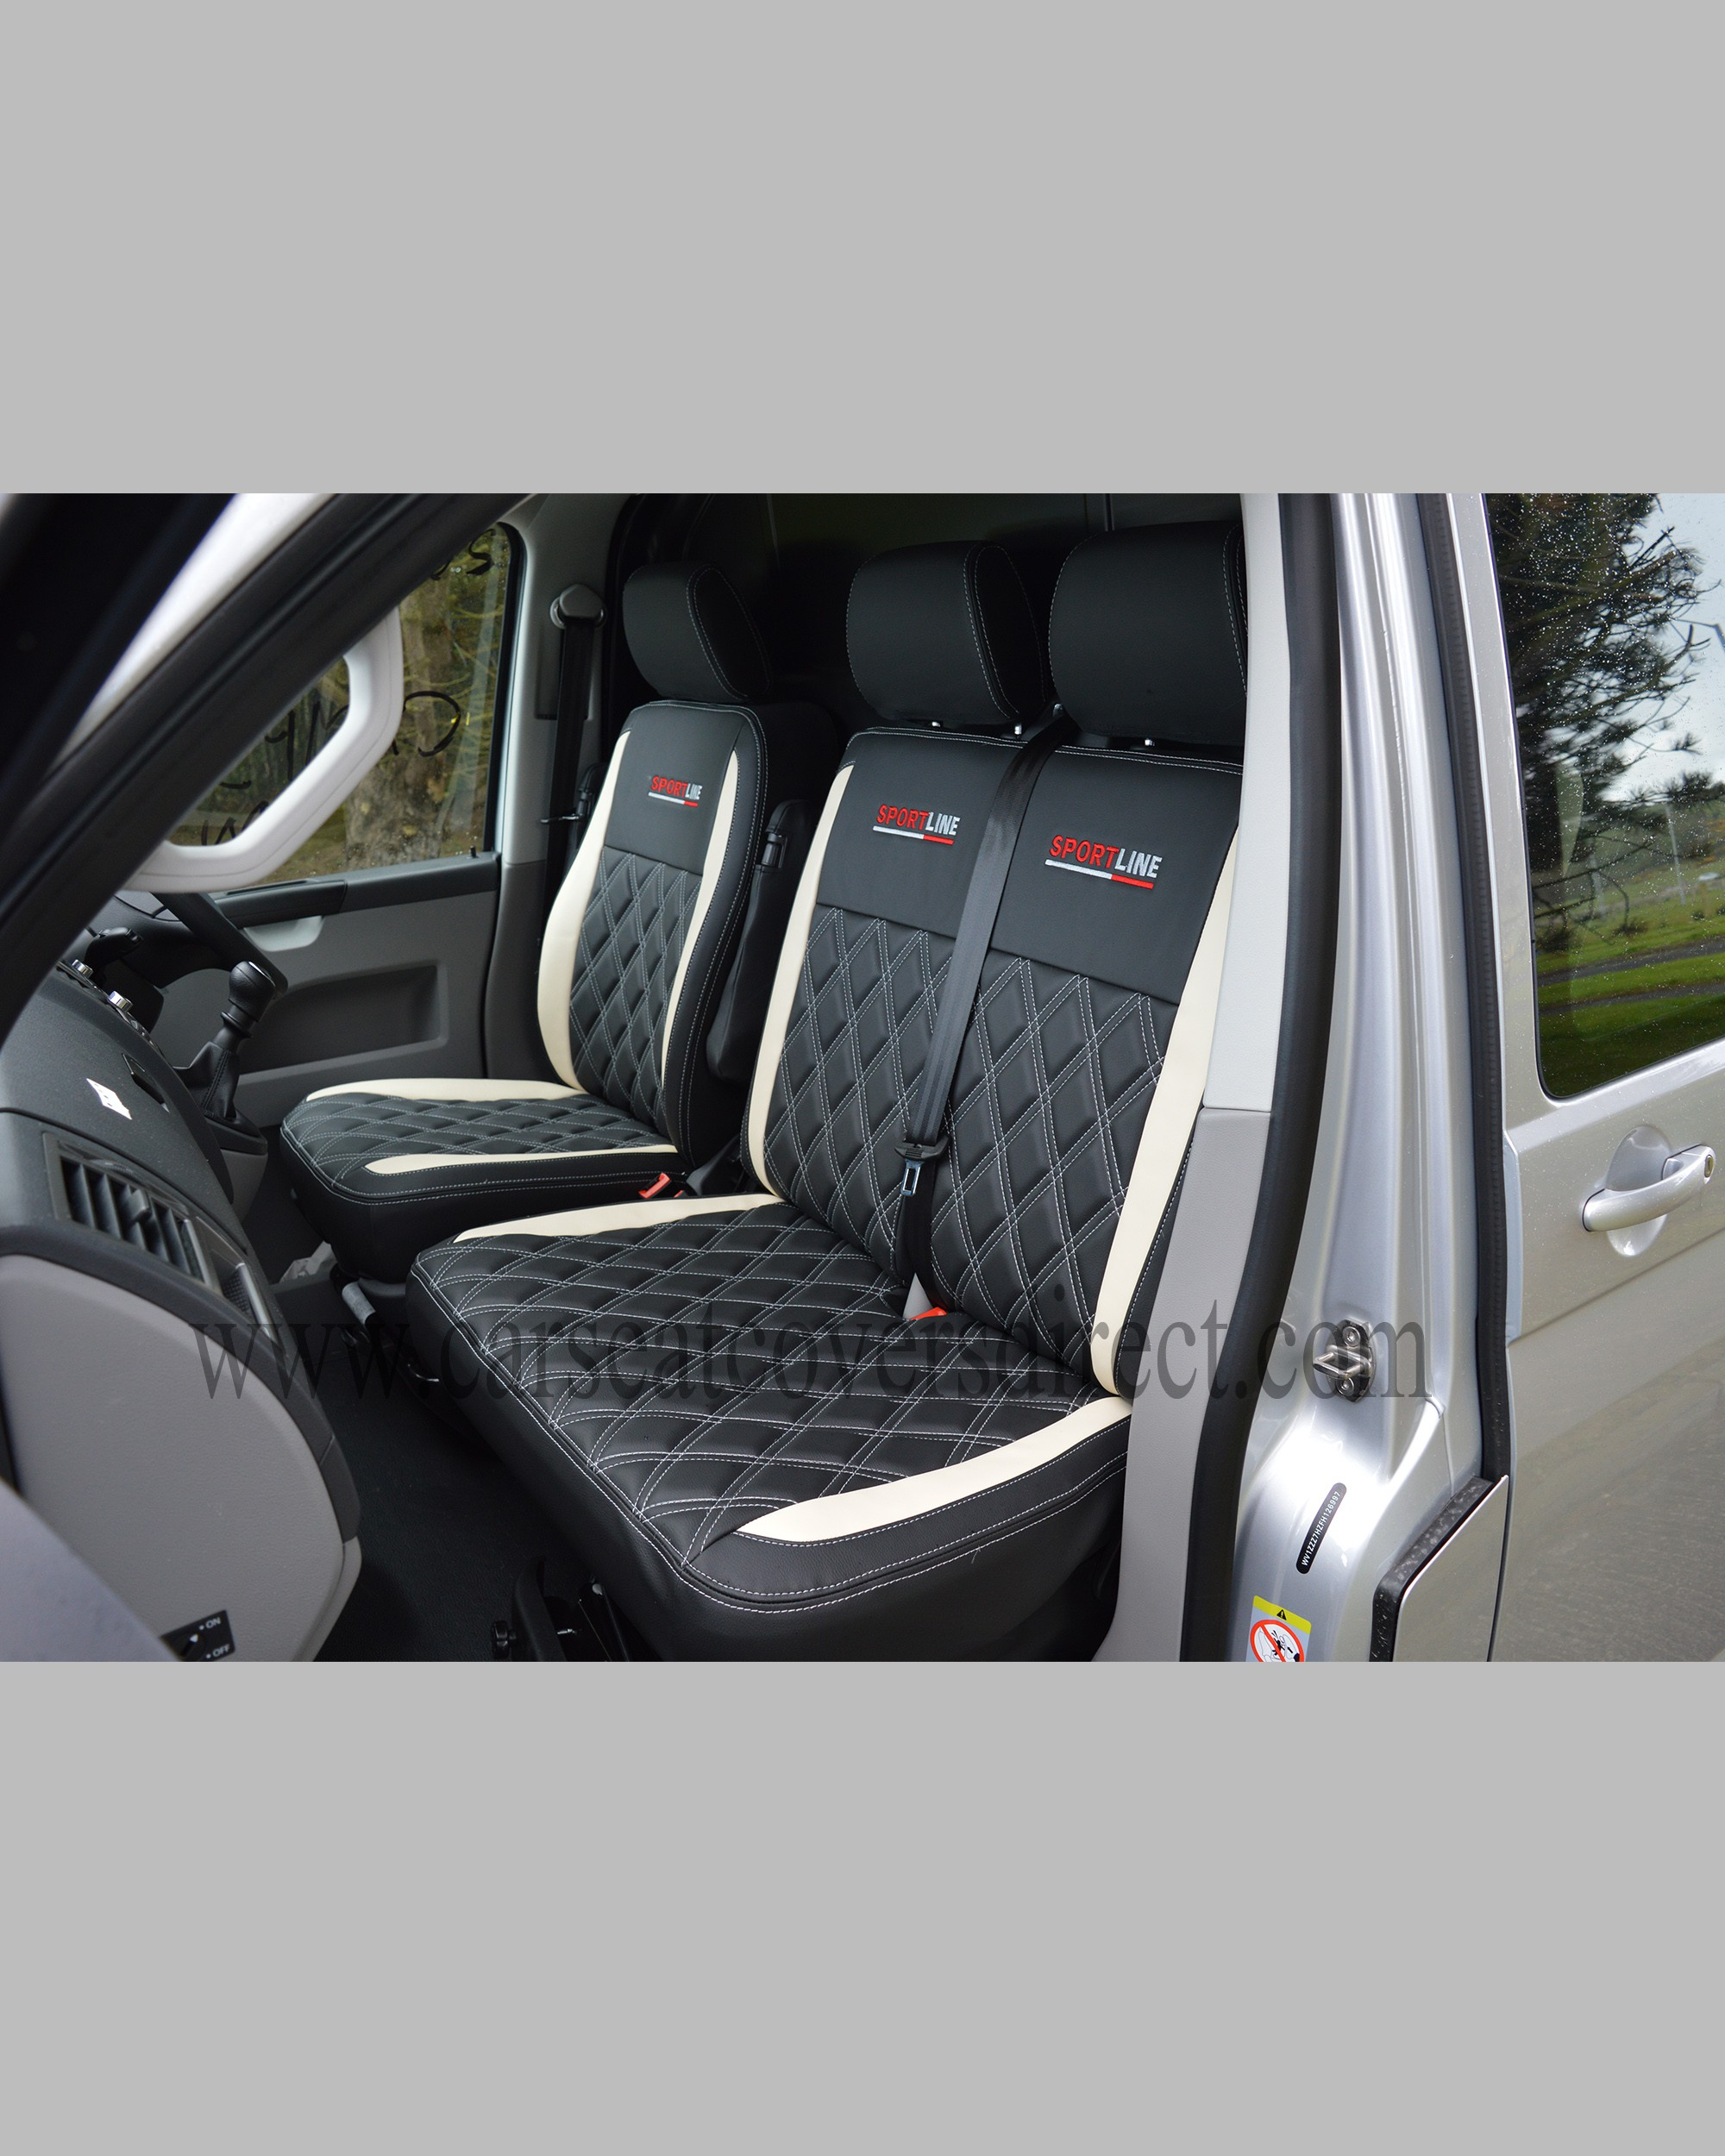 VW T5 front seats with black & white seat covers